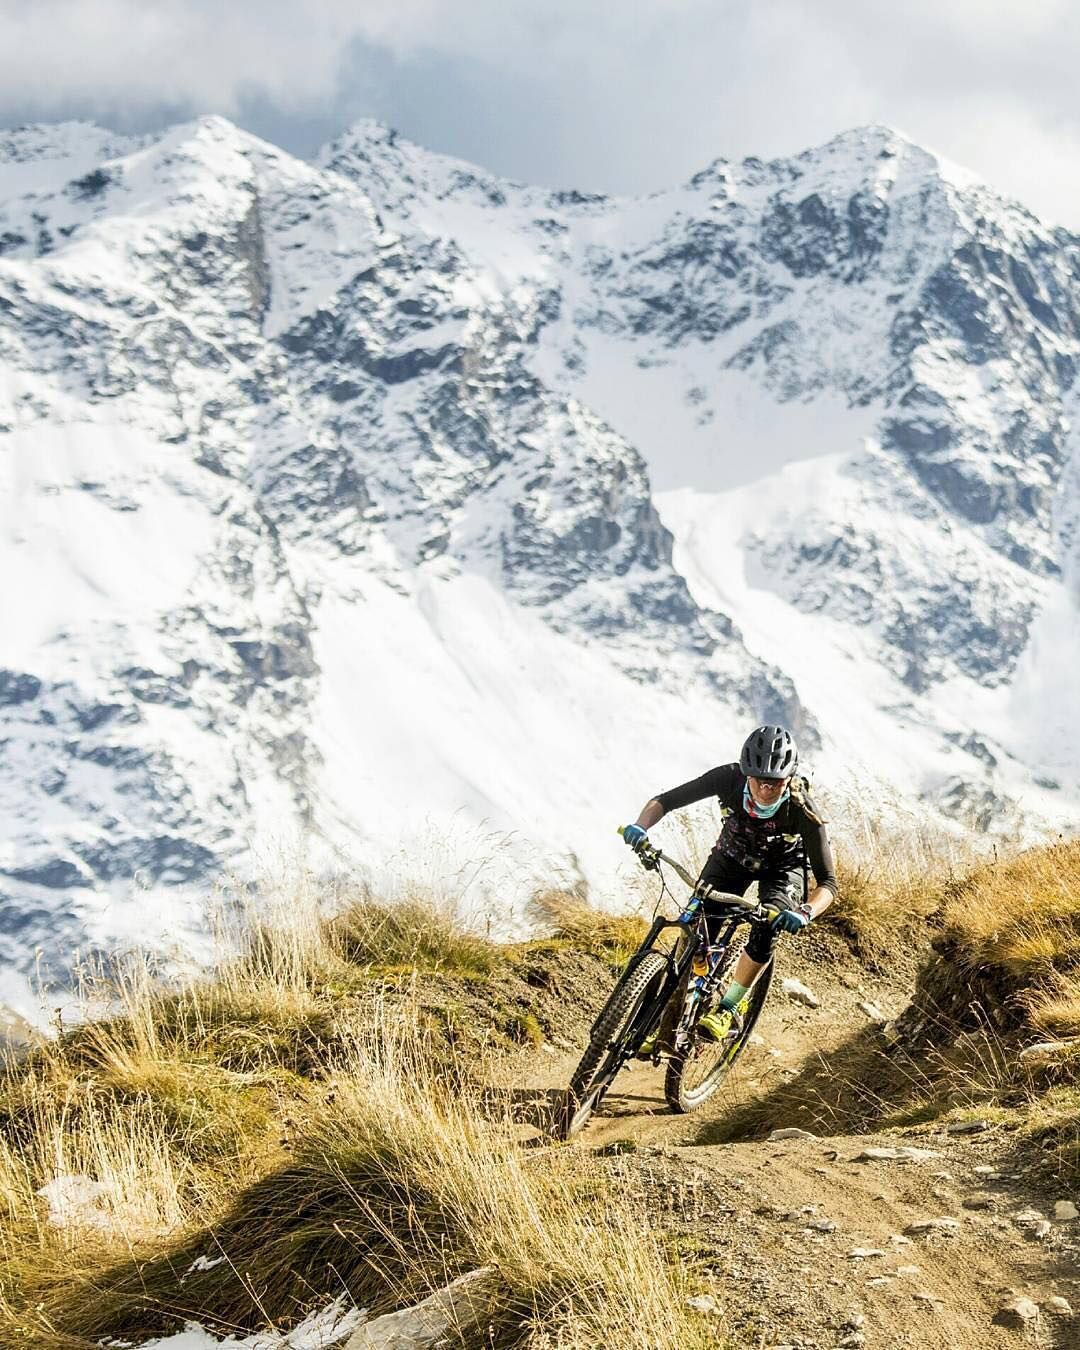 Pin By Quipmo On Mountain With Images Mountain Biking